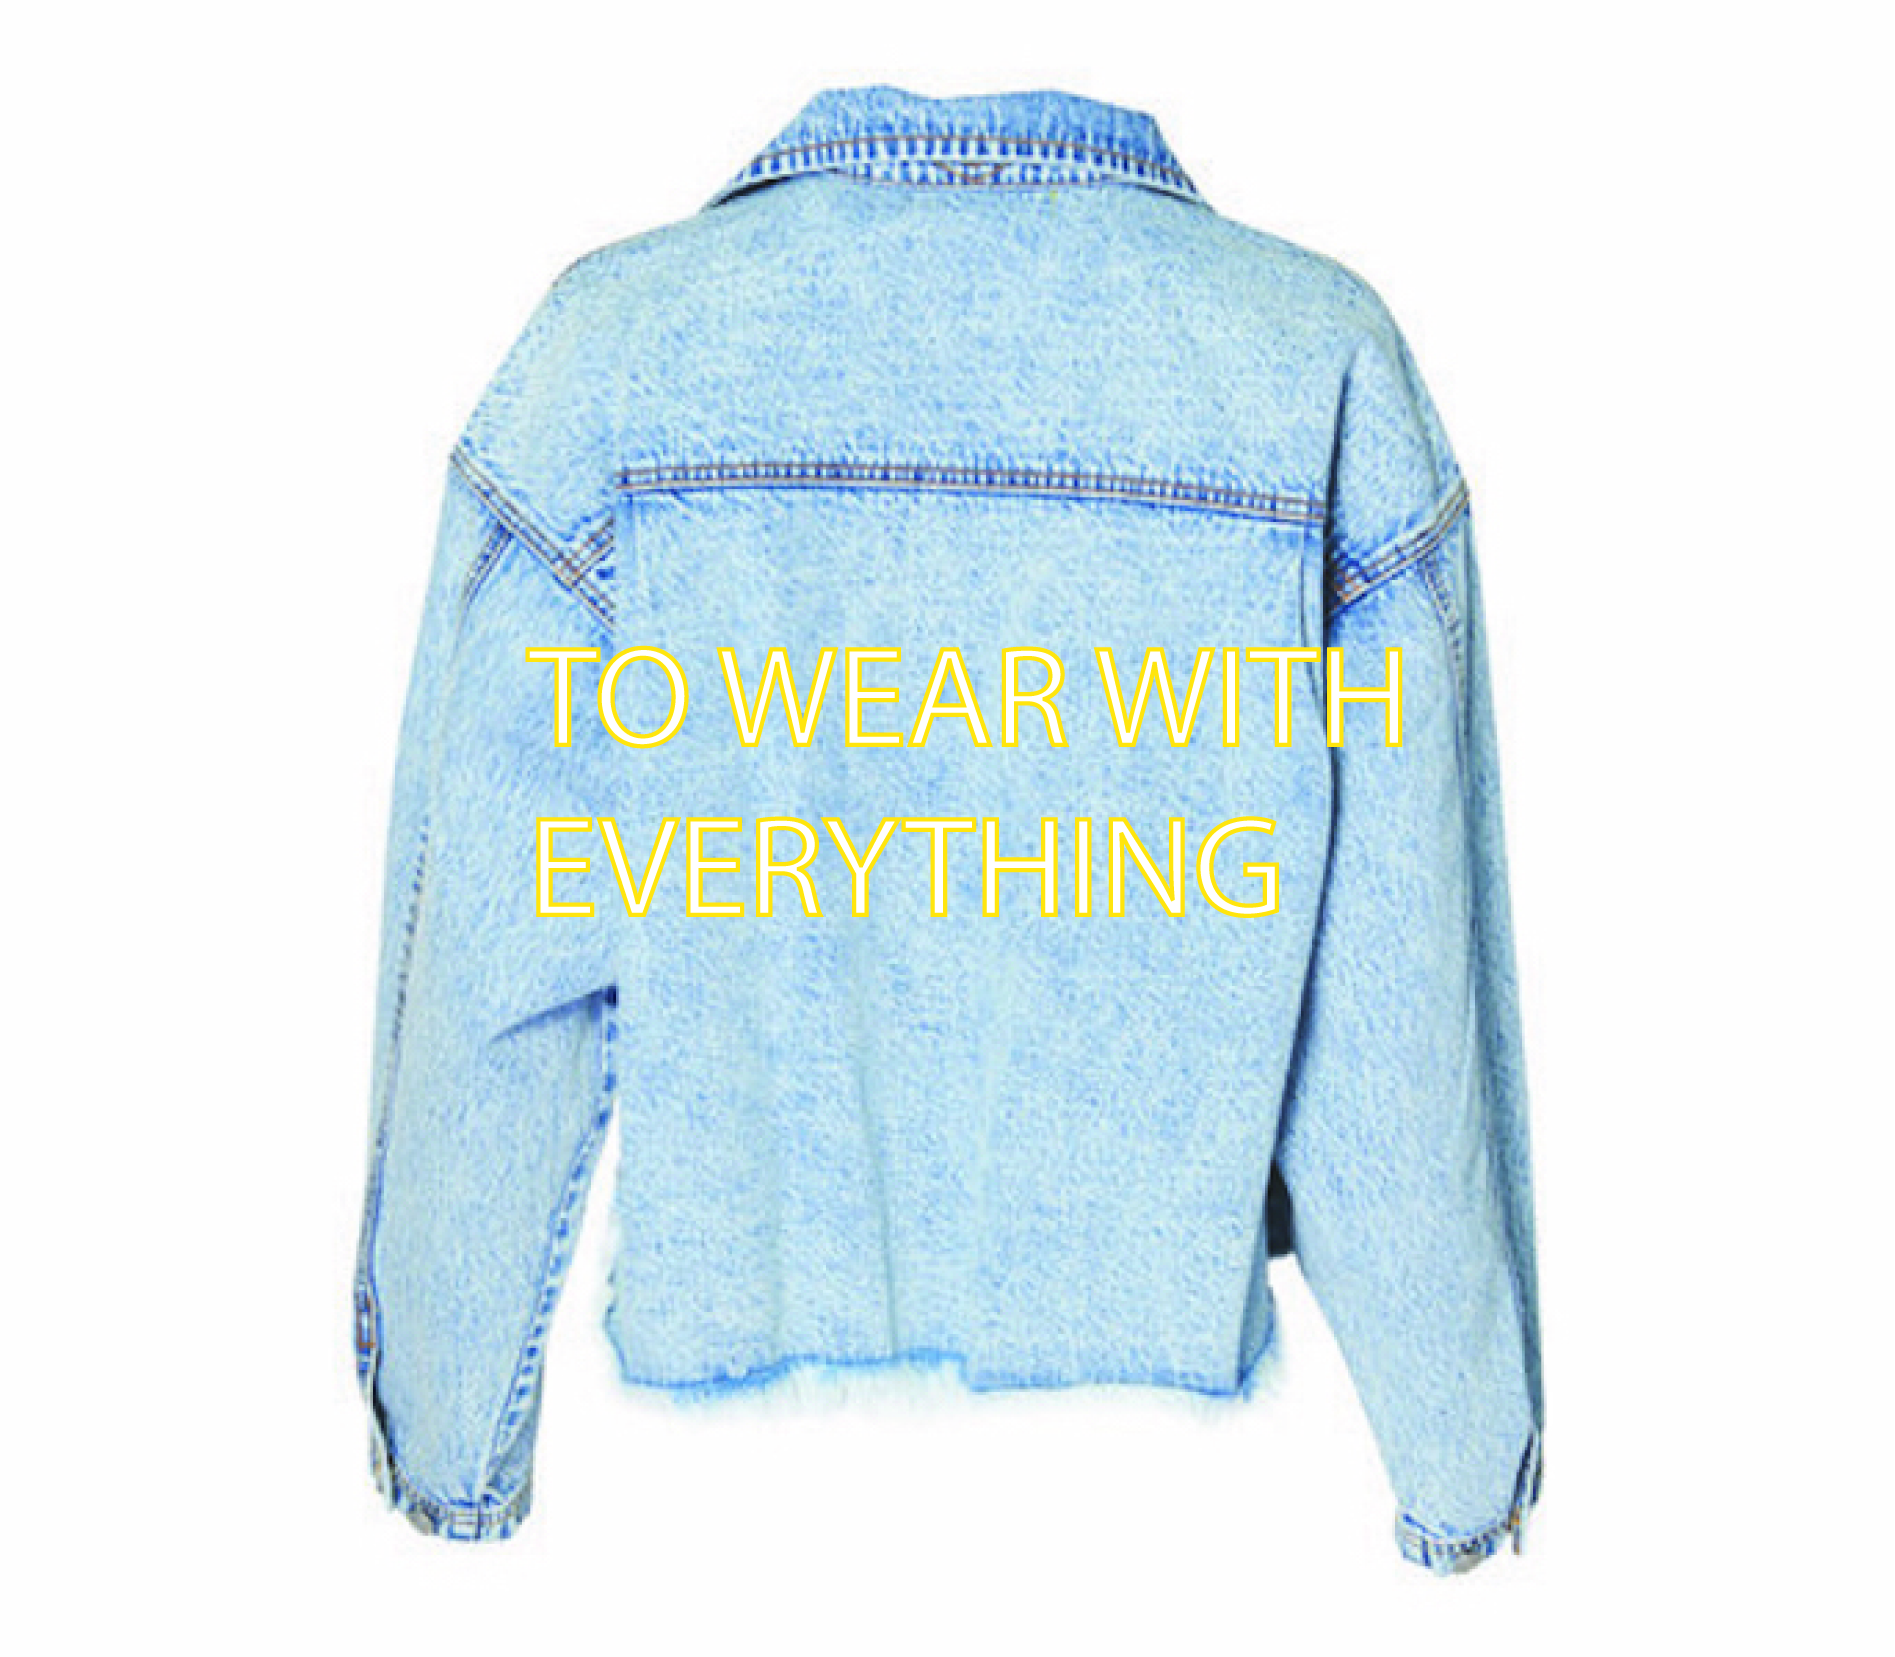 TO WEAR WITH EVERYTHING.jpg